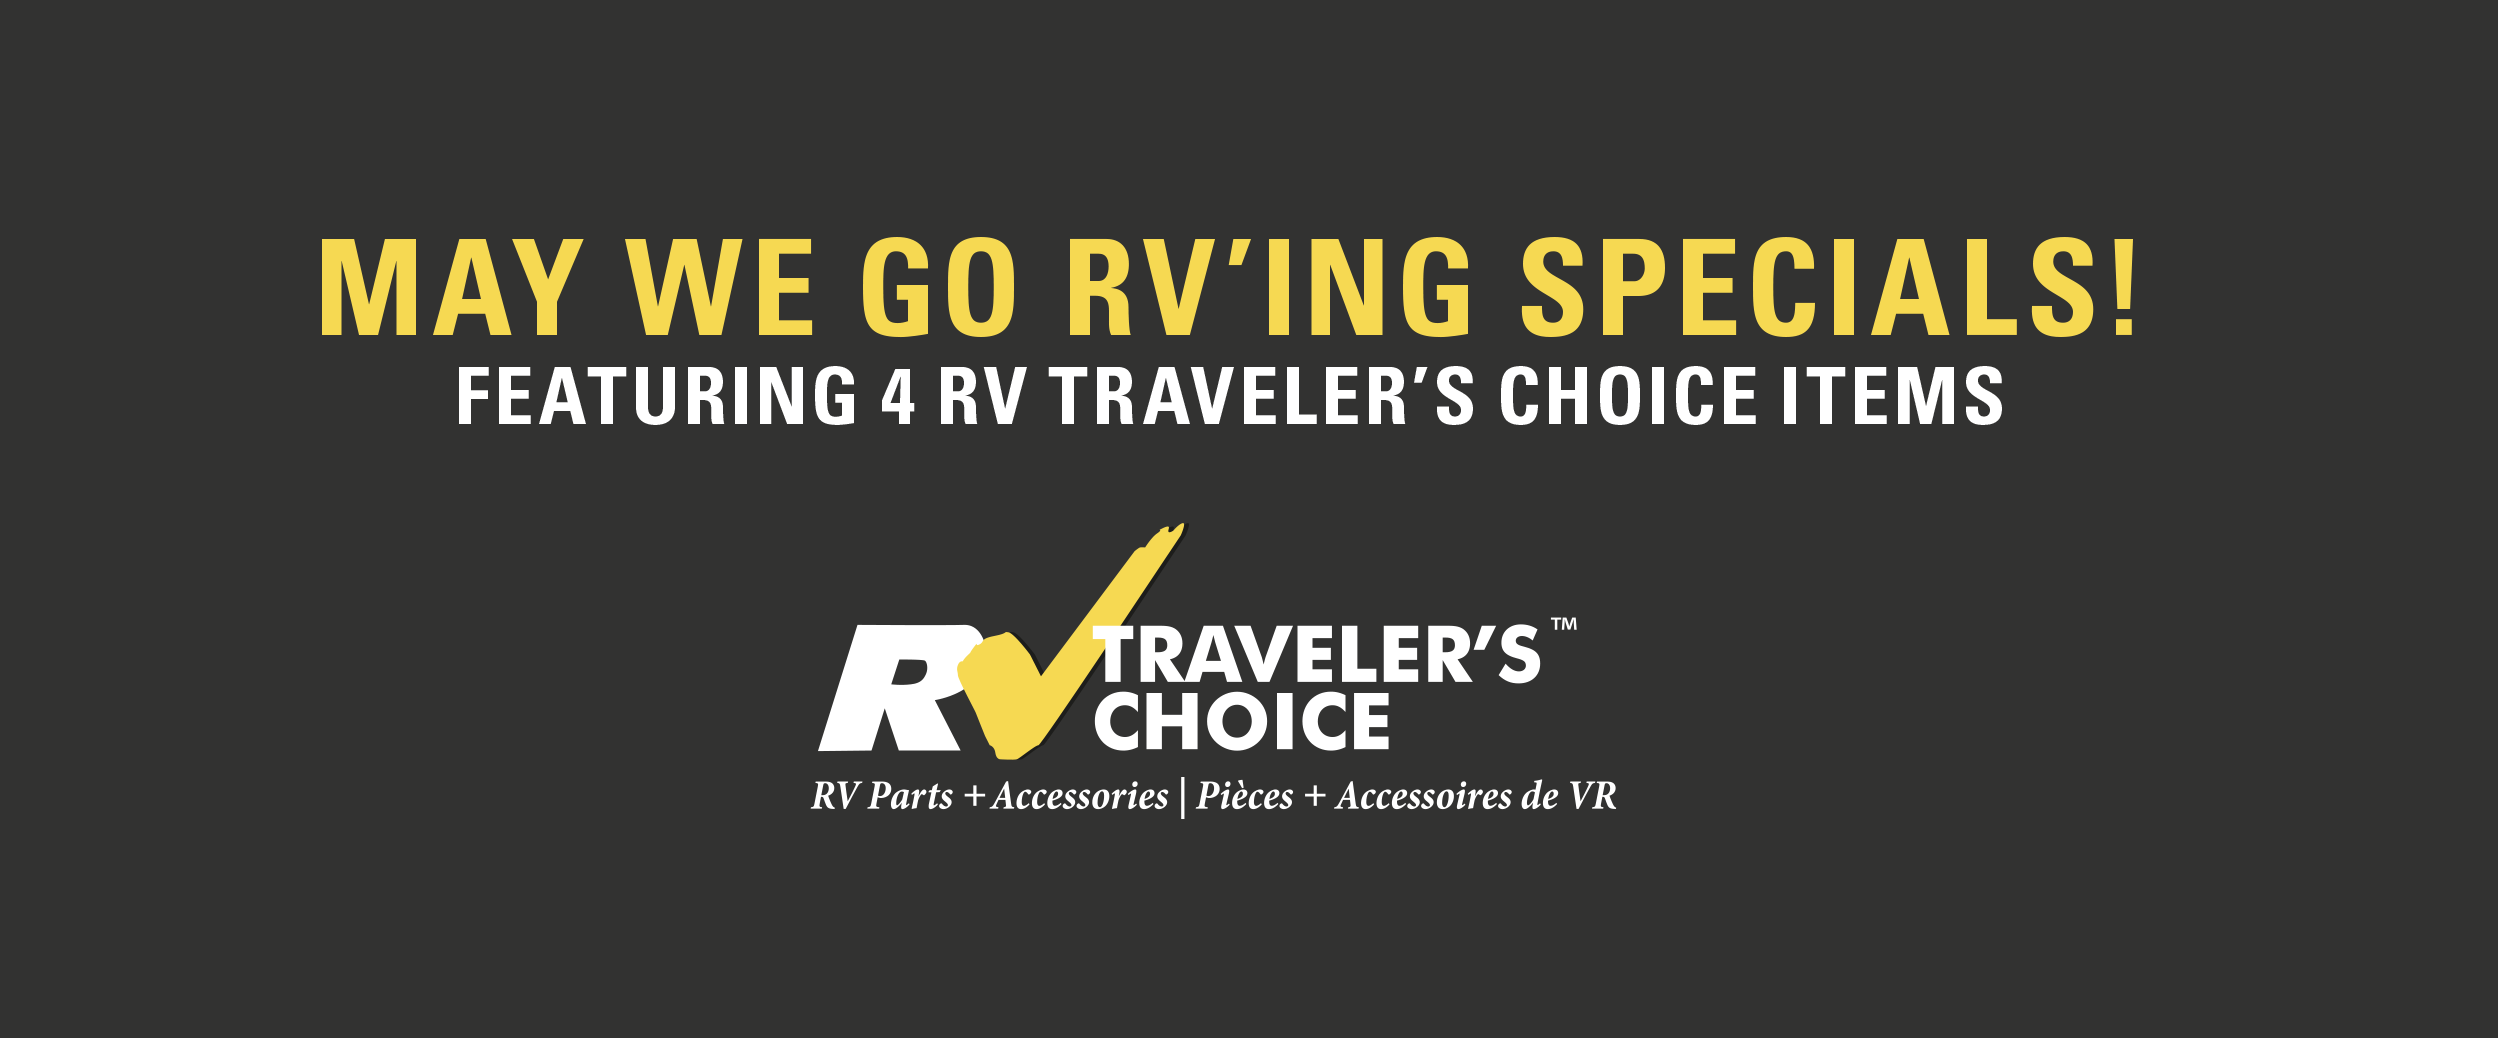 rv care travelers choice specials